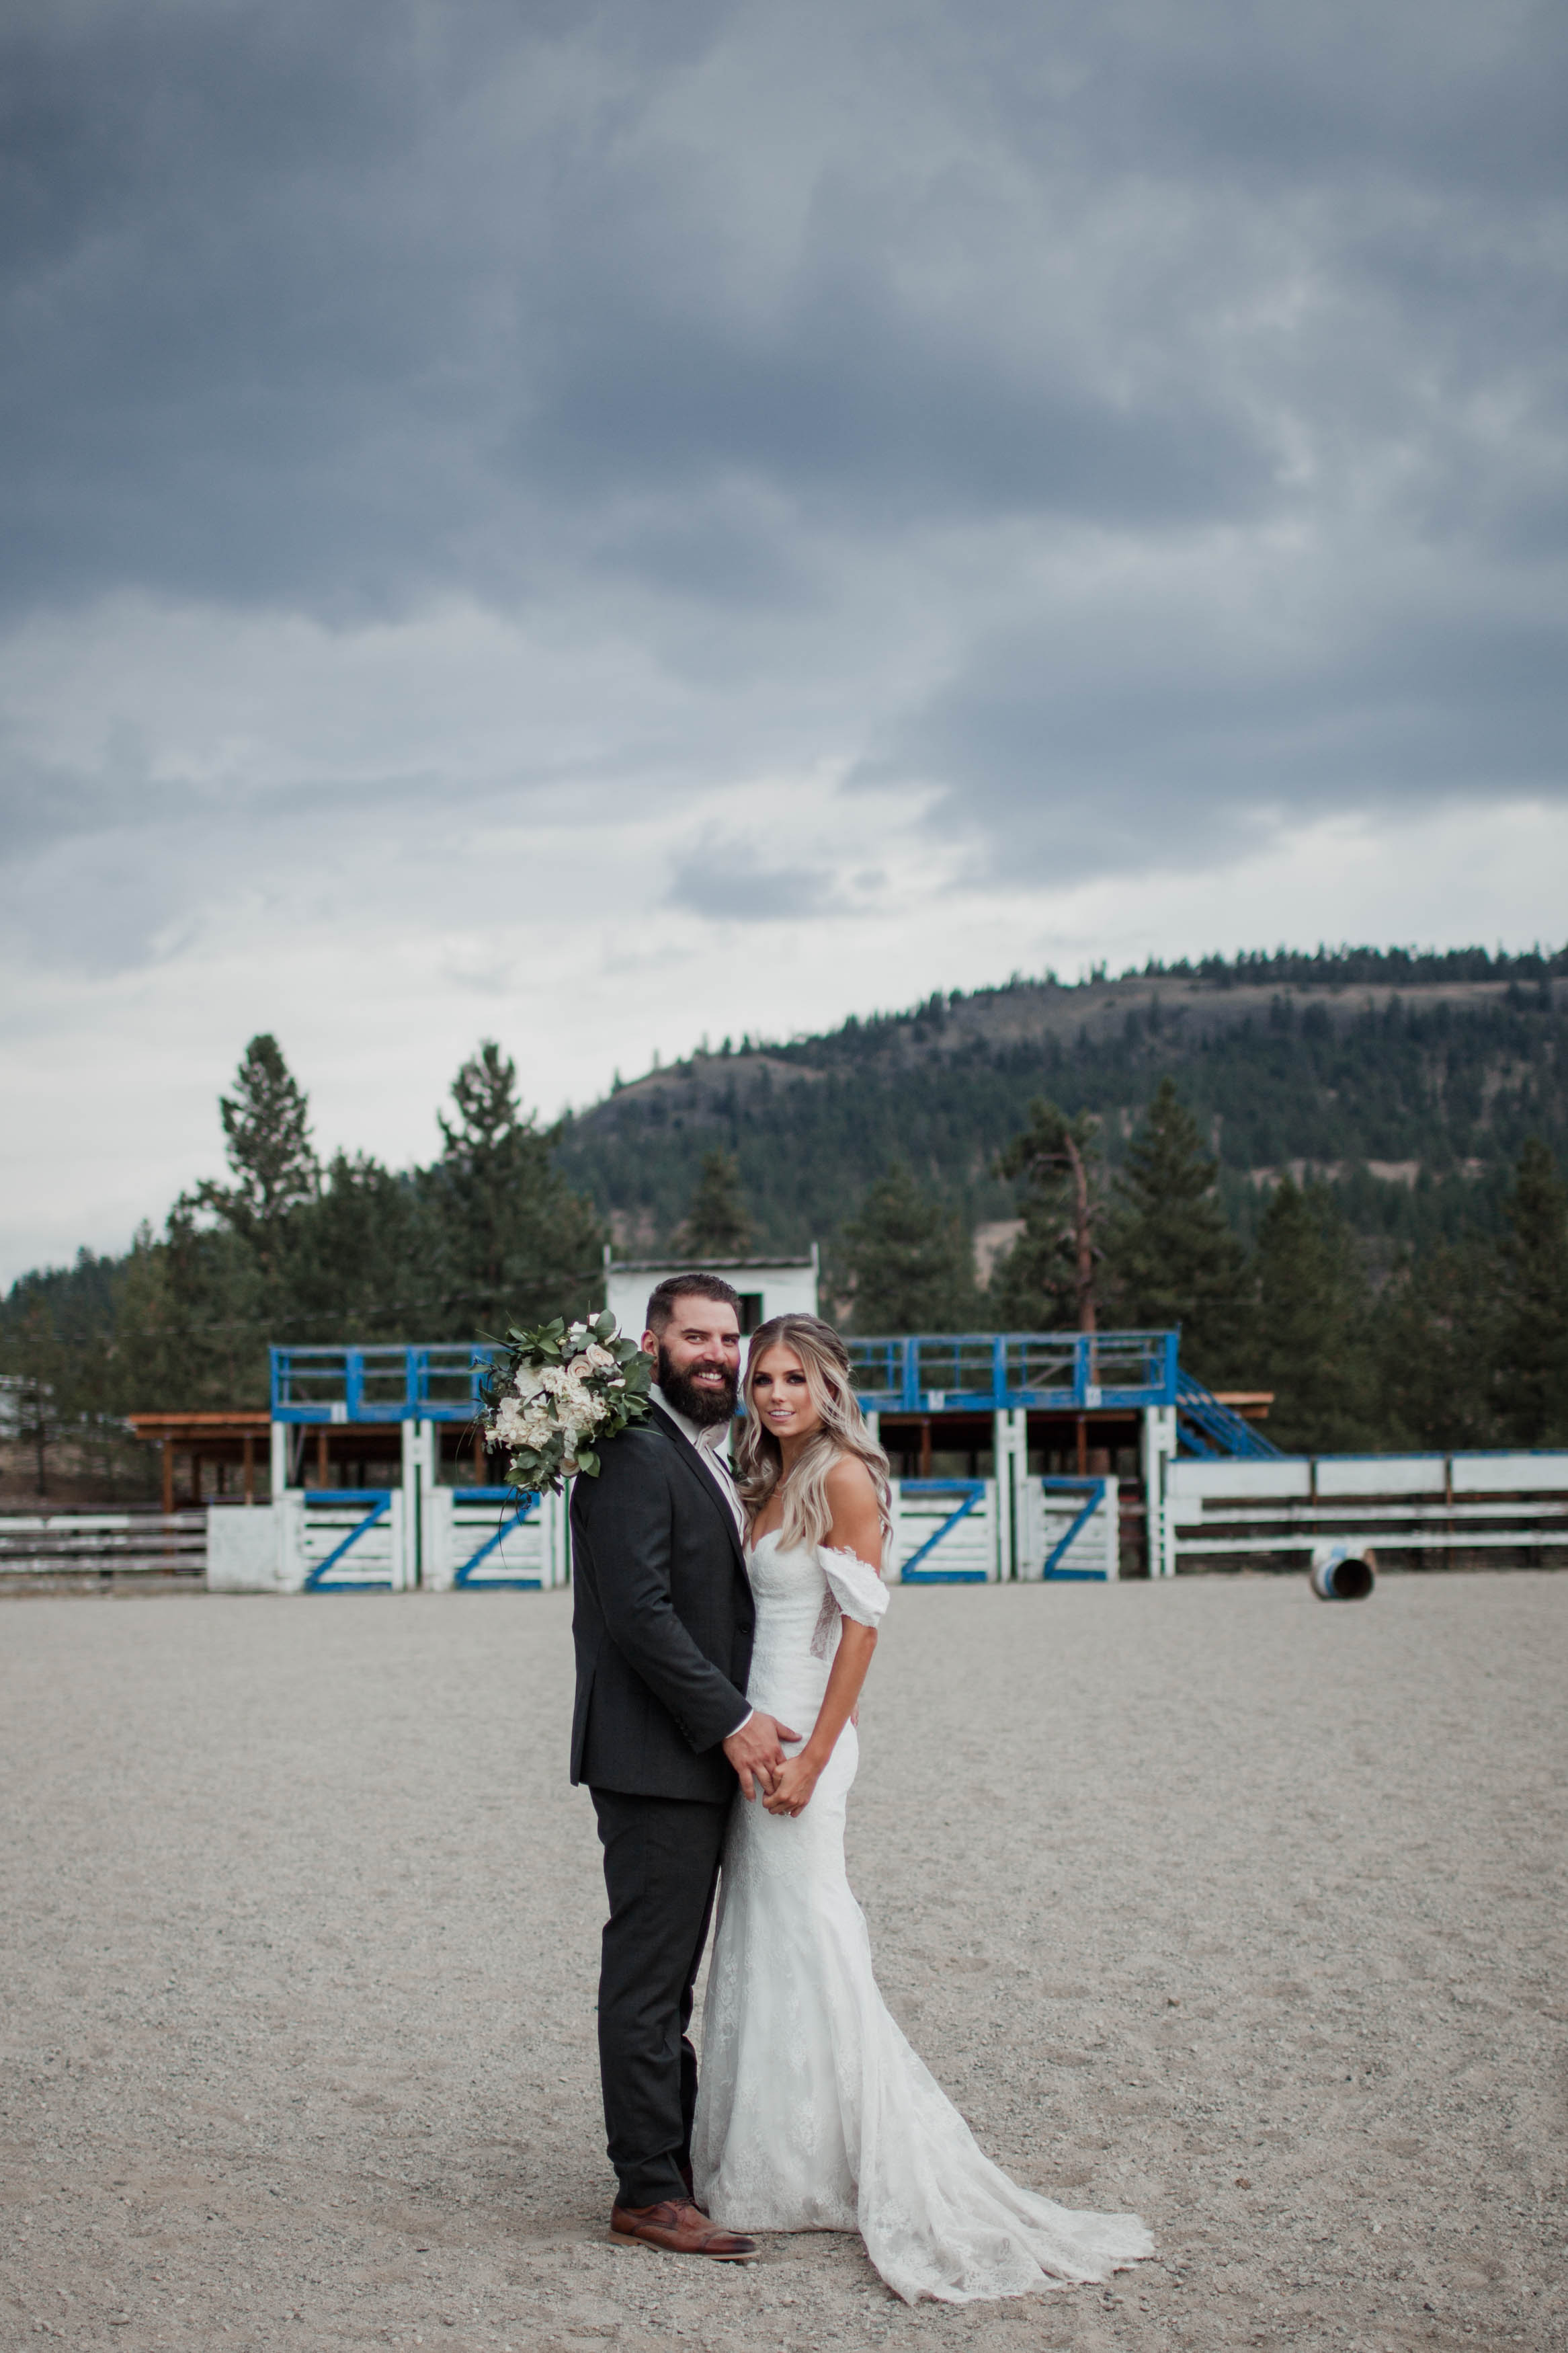 summerlandweddingphotography-75.jpg